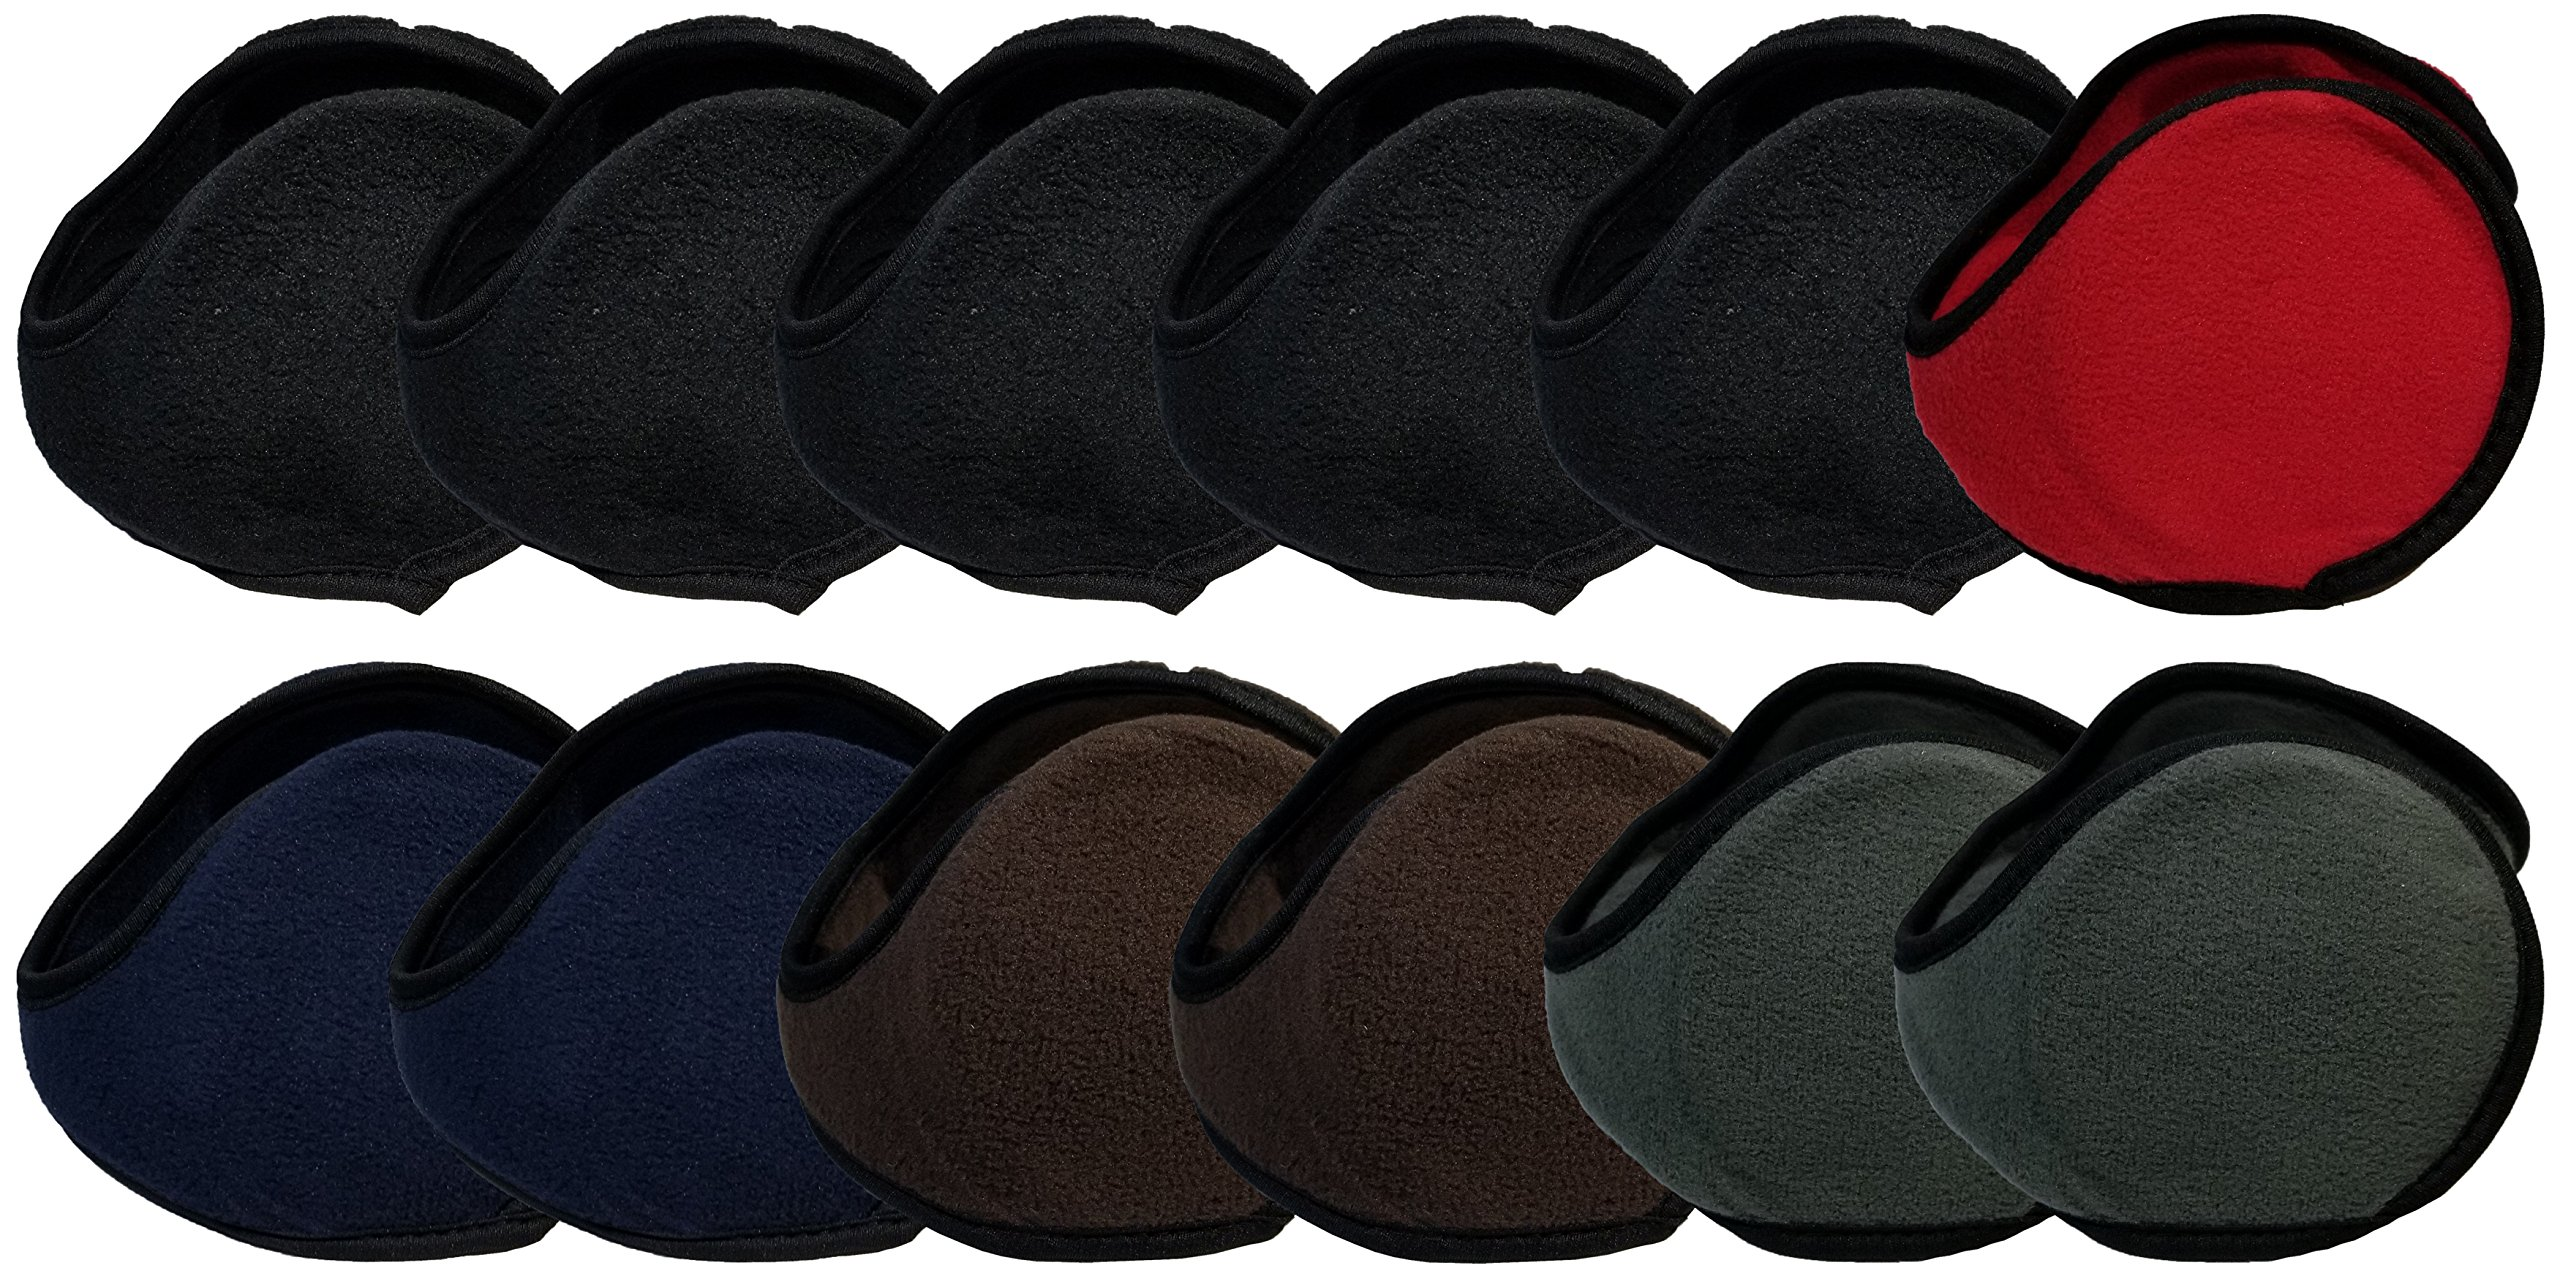 Winter Earmuffs, 12 Pack, Cozy Ear Warmers Colors Mens Womens Unisex Bulk Assorted Ear Muff (6 Pack - Assorted Solid)